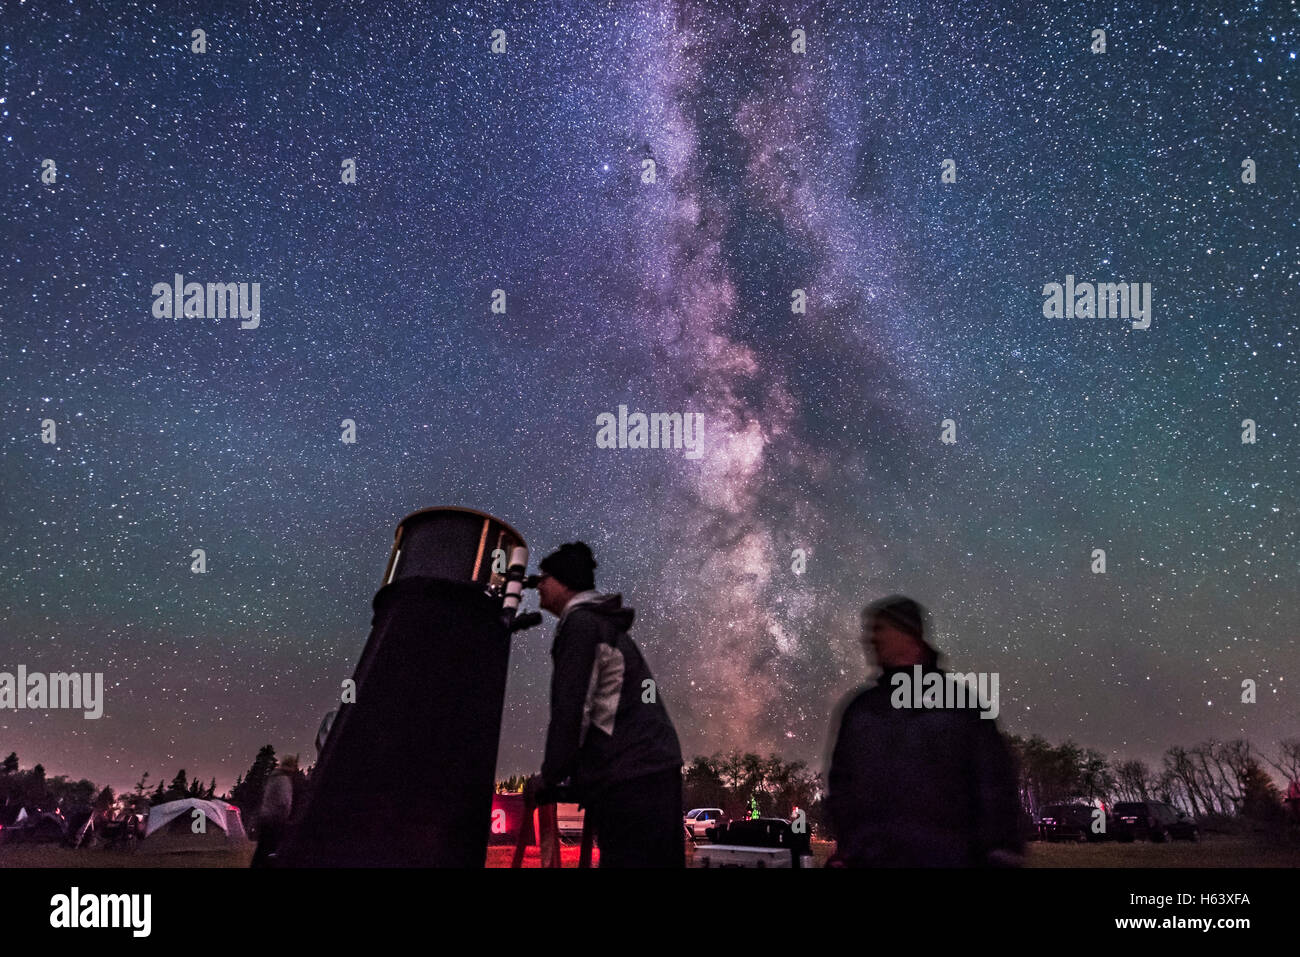 Ron Waldron and friend at the eyepiece of a Dobsonian telescope at the Saskatchewan Summer Star Party. - Stock Image